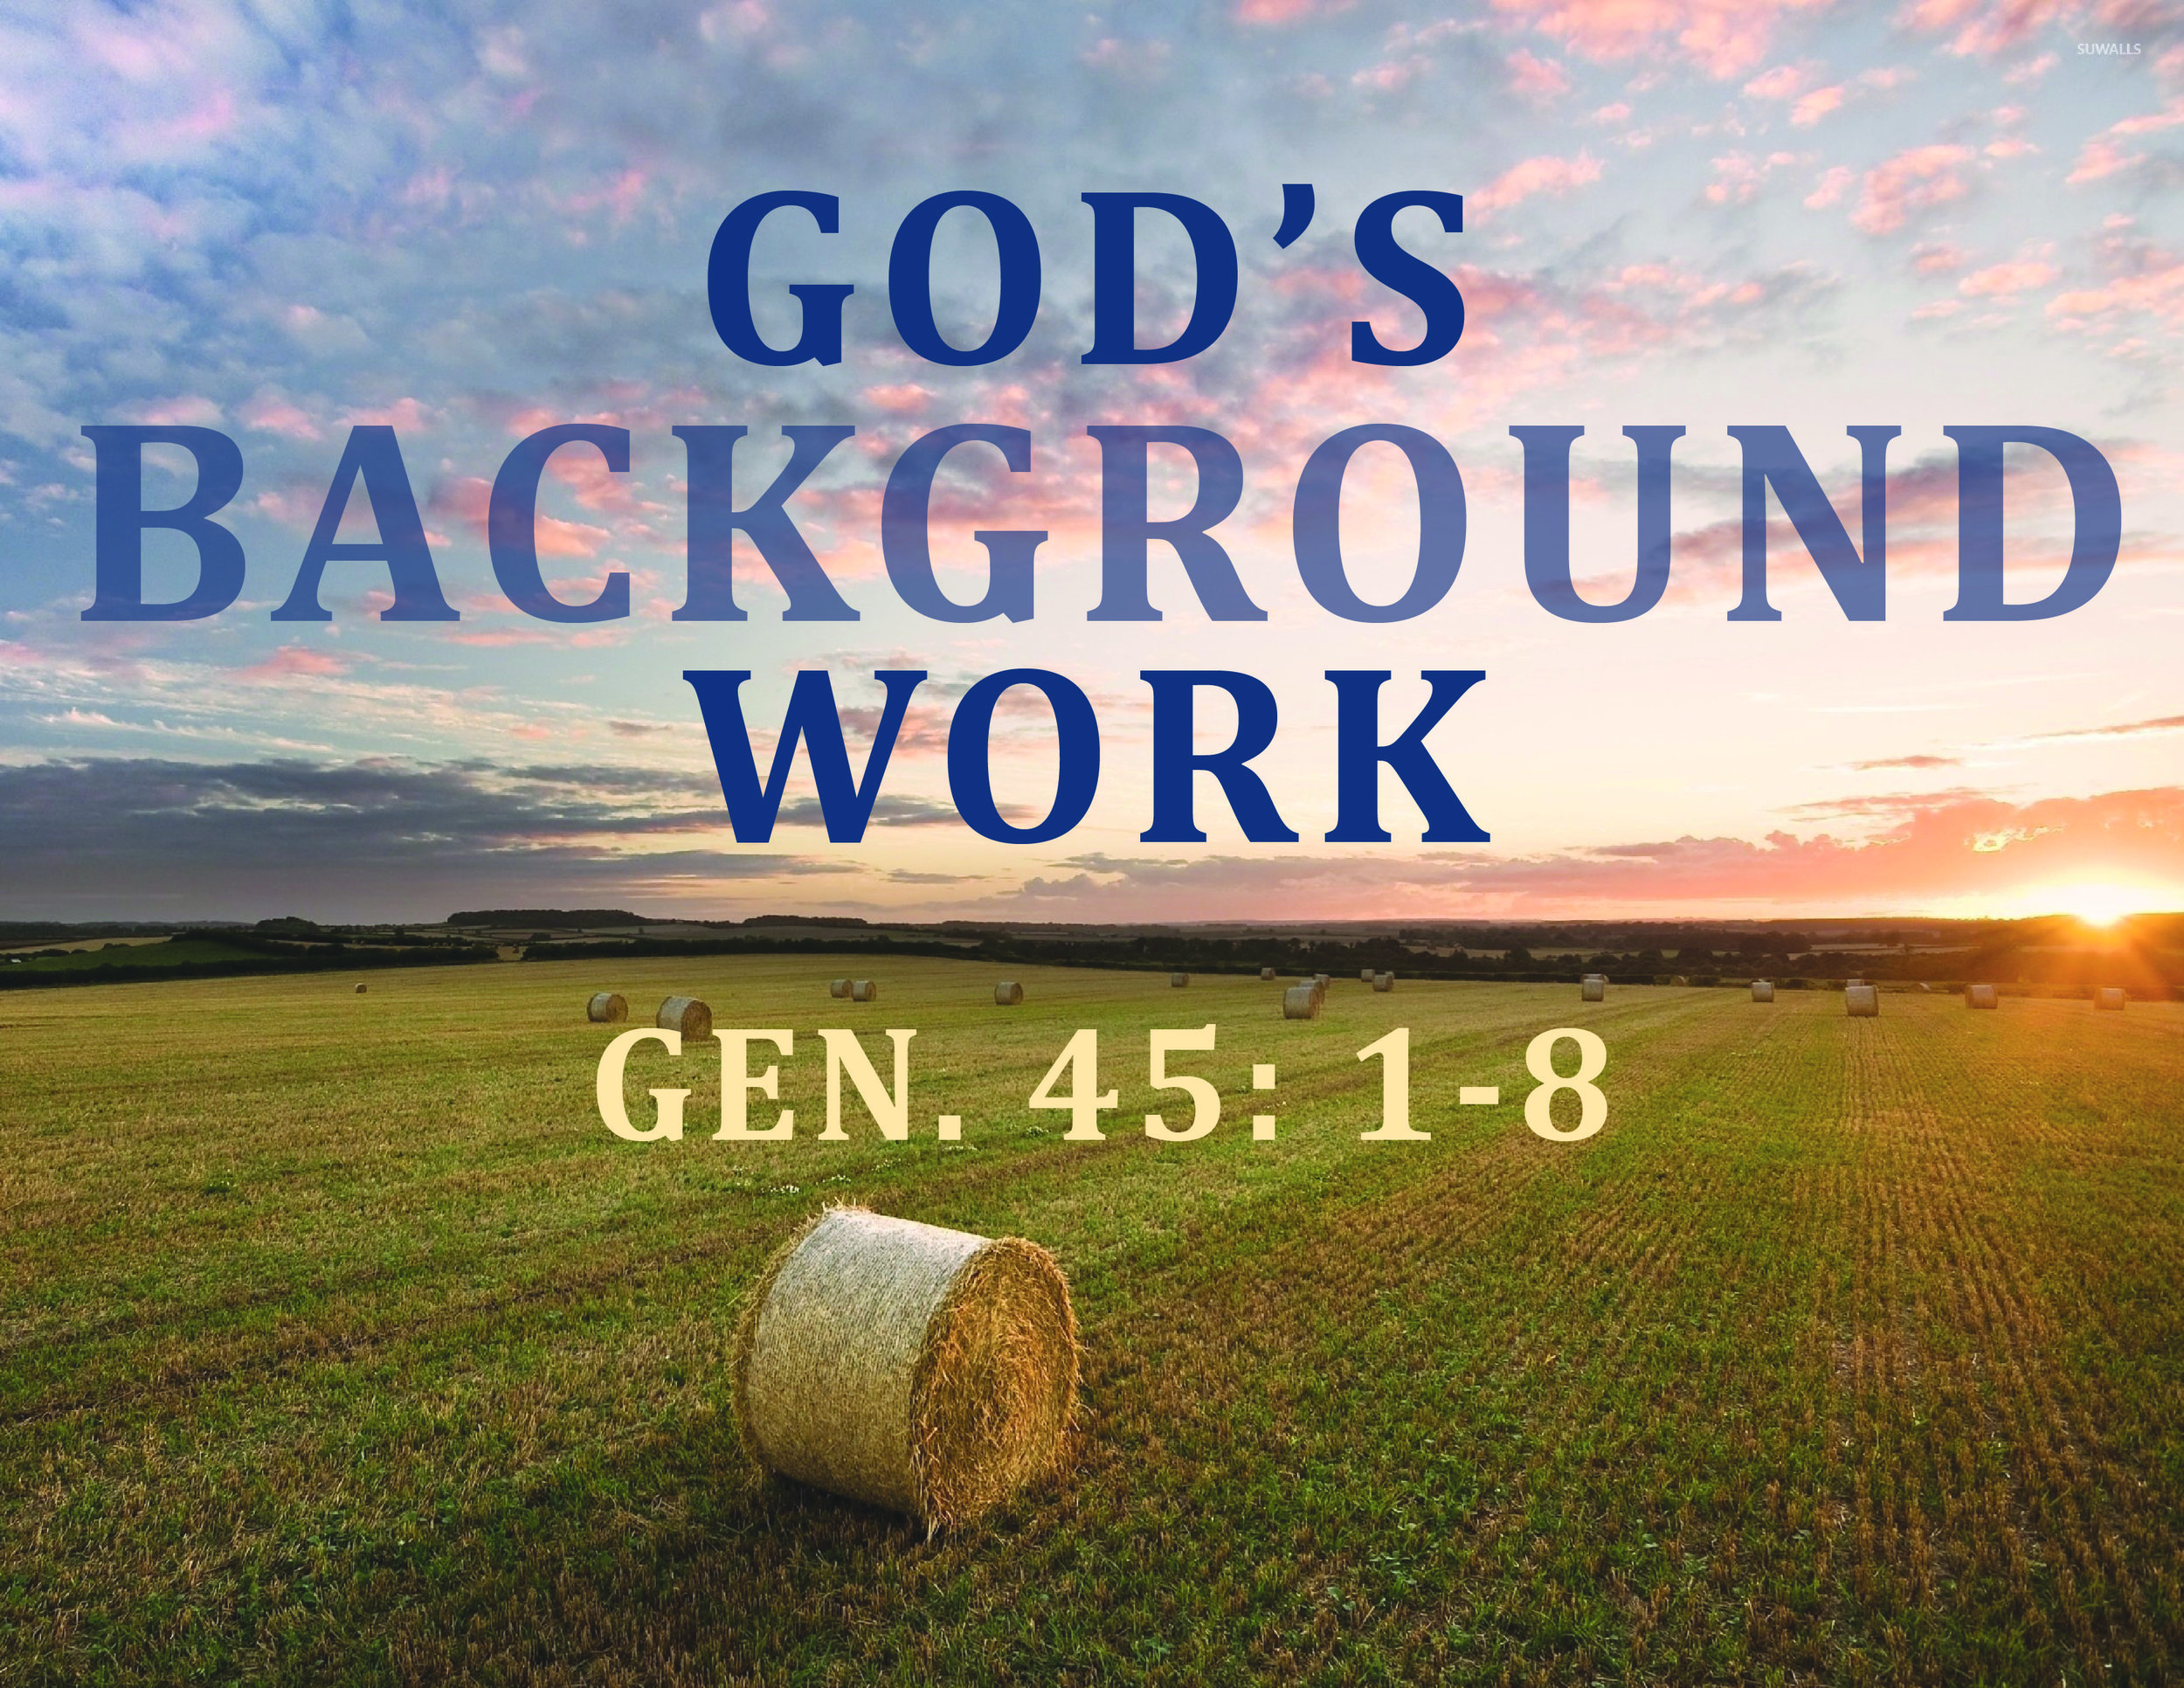 backgroundwork-01.jpg